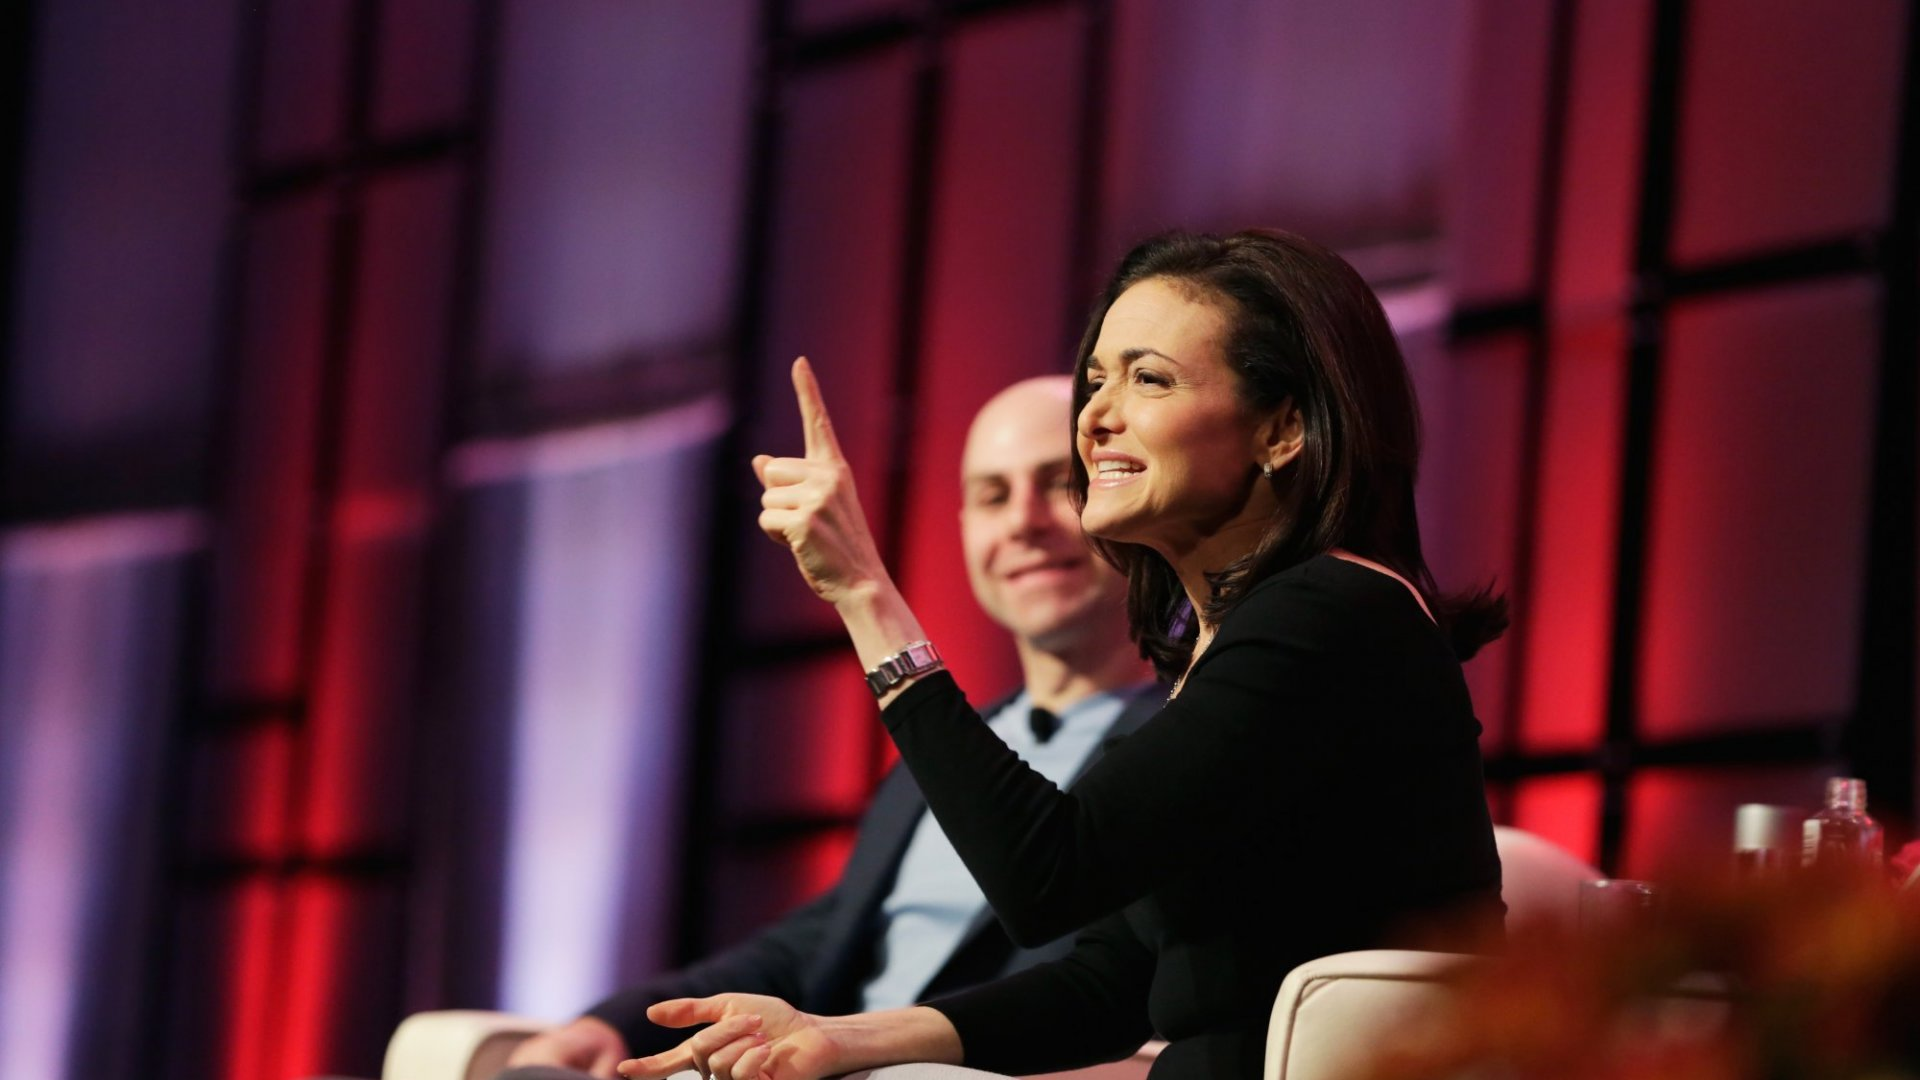 Sheryl Sandberg Said This About Leadership And It Was Incredibly Insightful